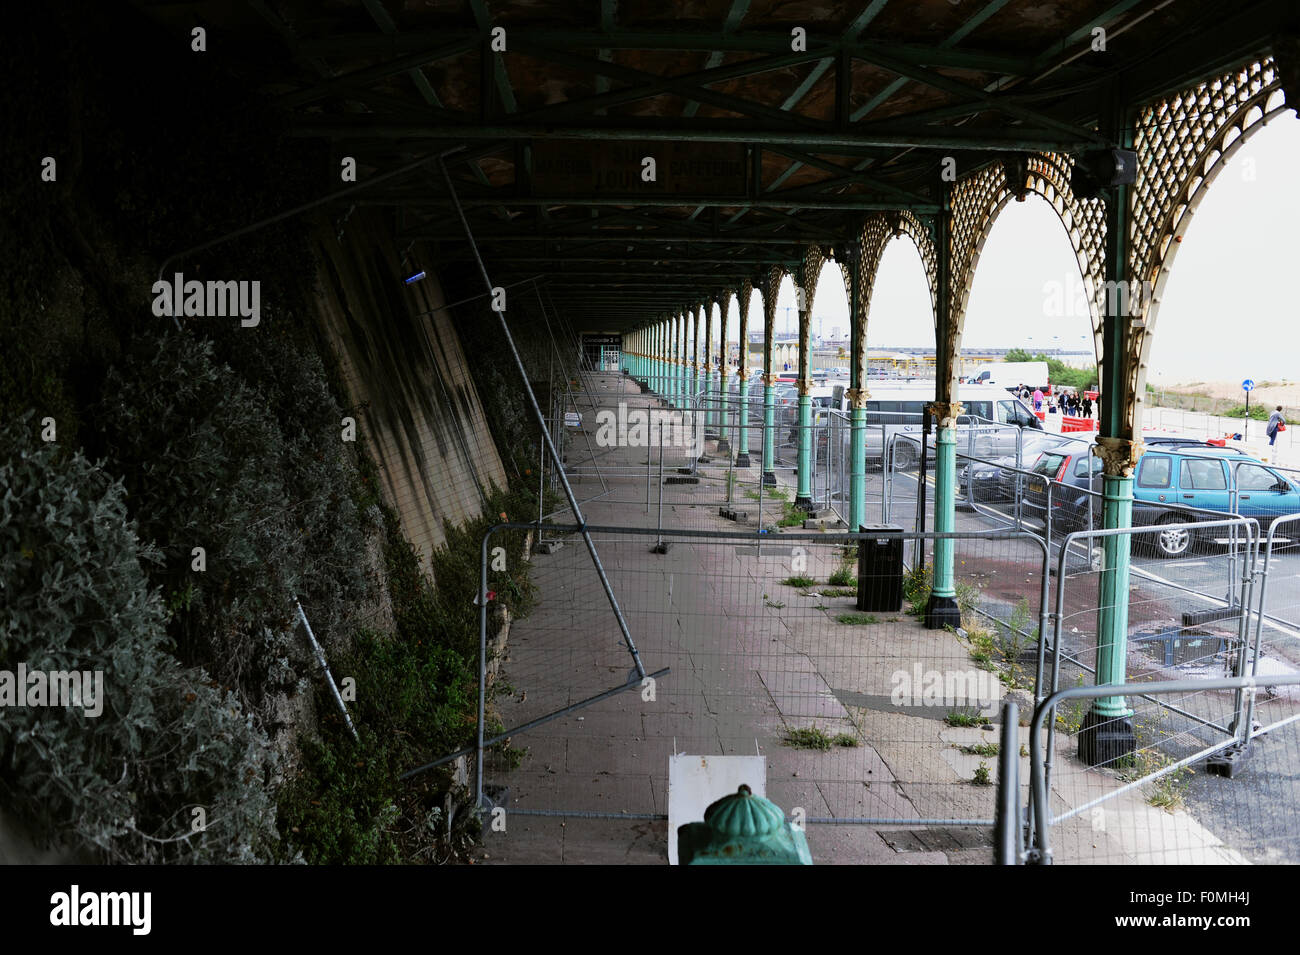 Brighton, UK. 18th August, 2015. A view under the crumbling Brighton seafront arches along Madeira Drive which have - Stock Image